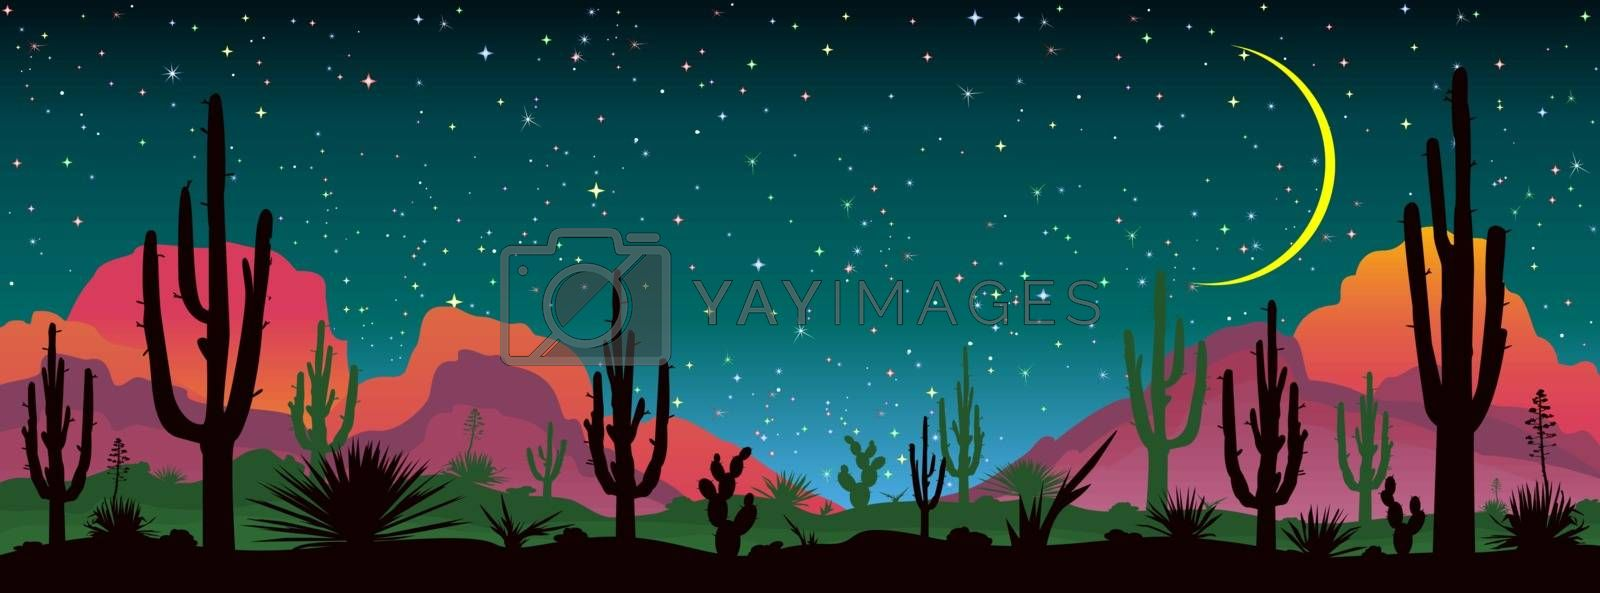 Landscape with various cacti against the backdrop of mountains and the night starry sky.